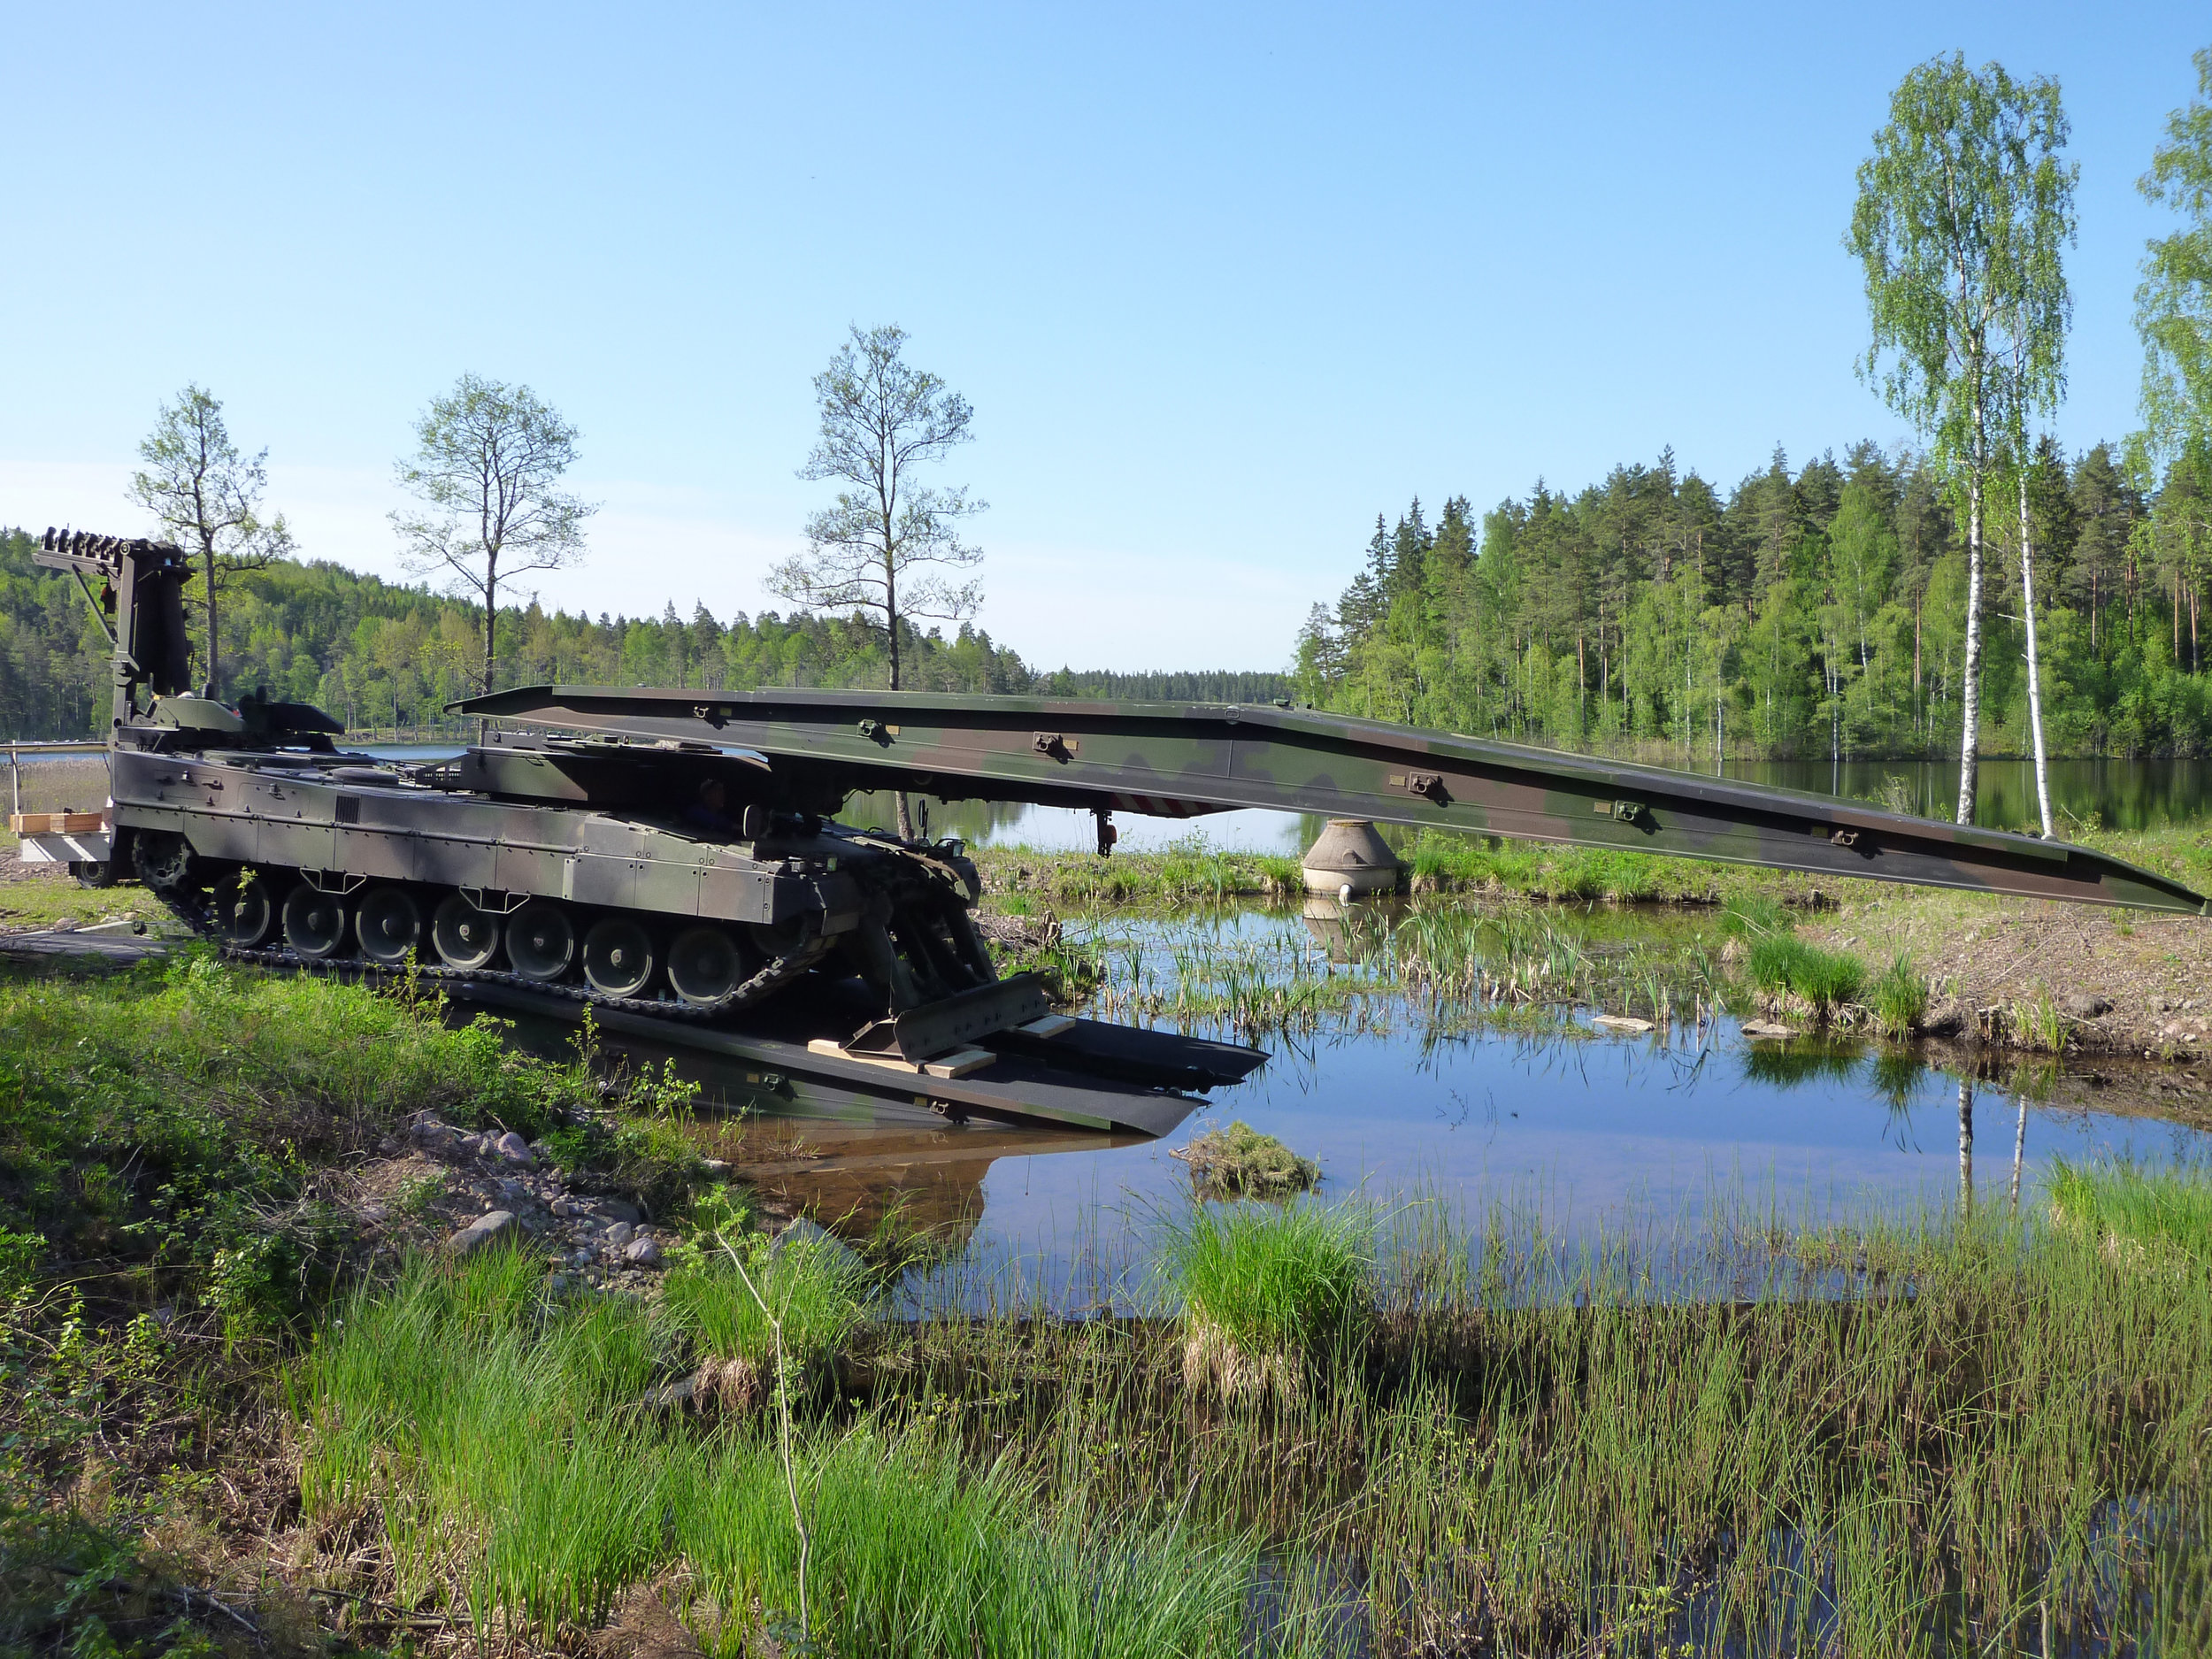 In 2008, Krauss-Maffei Wegmann introduced the Leguan, a new bridge laying system that can be mounted on the chassis of either Leopard 2 main battle tanks (pictured) or carried by a variety of wheeled vehicles. Leguan has horizontal (cantilever-type) launching, automatic launching within a few minutes, one-man and two-man operational abilities and an integrated test system. (all photos courtesy of krauss-maffei wegmann)